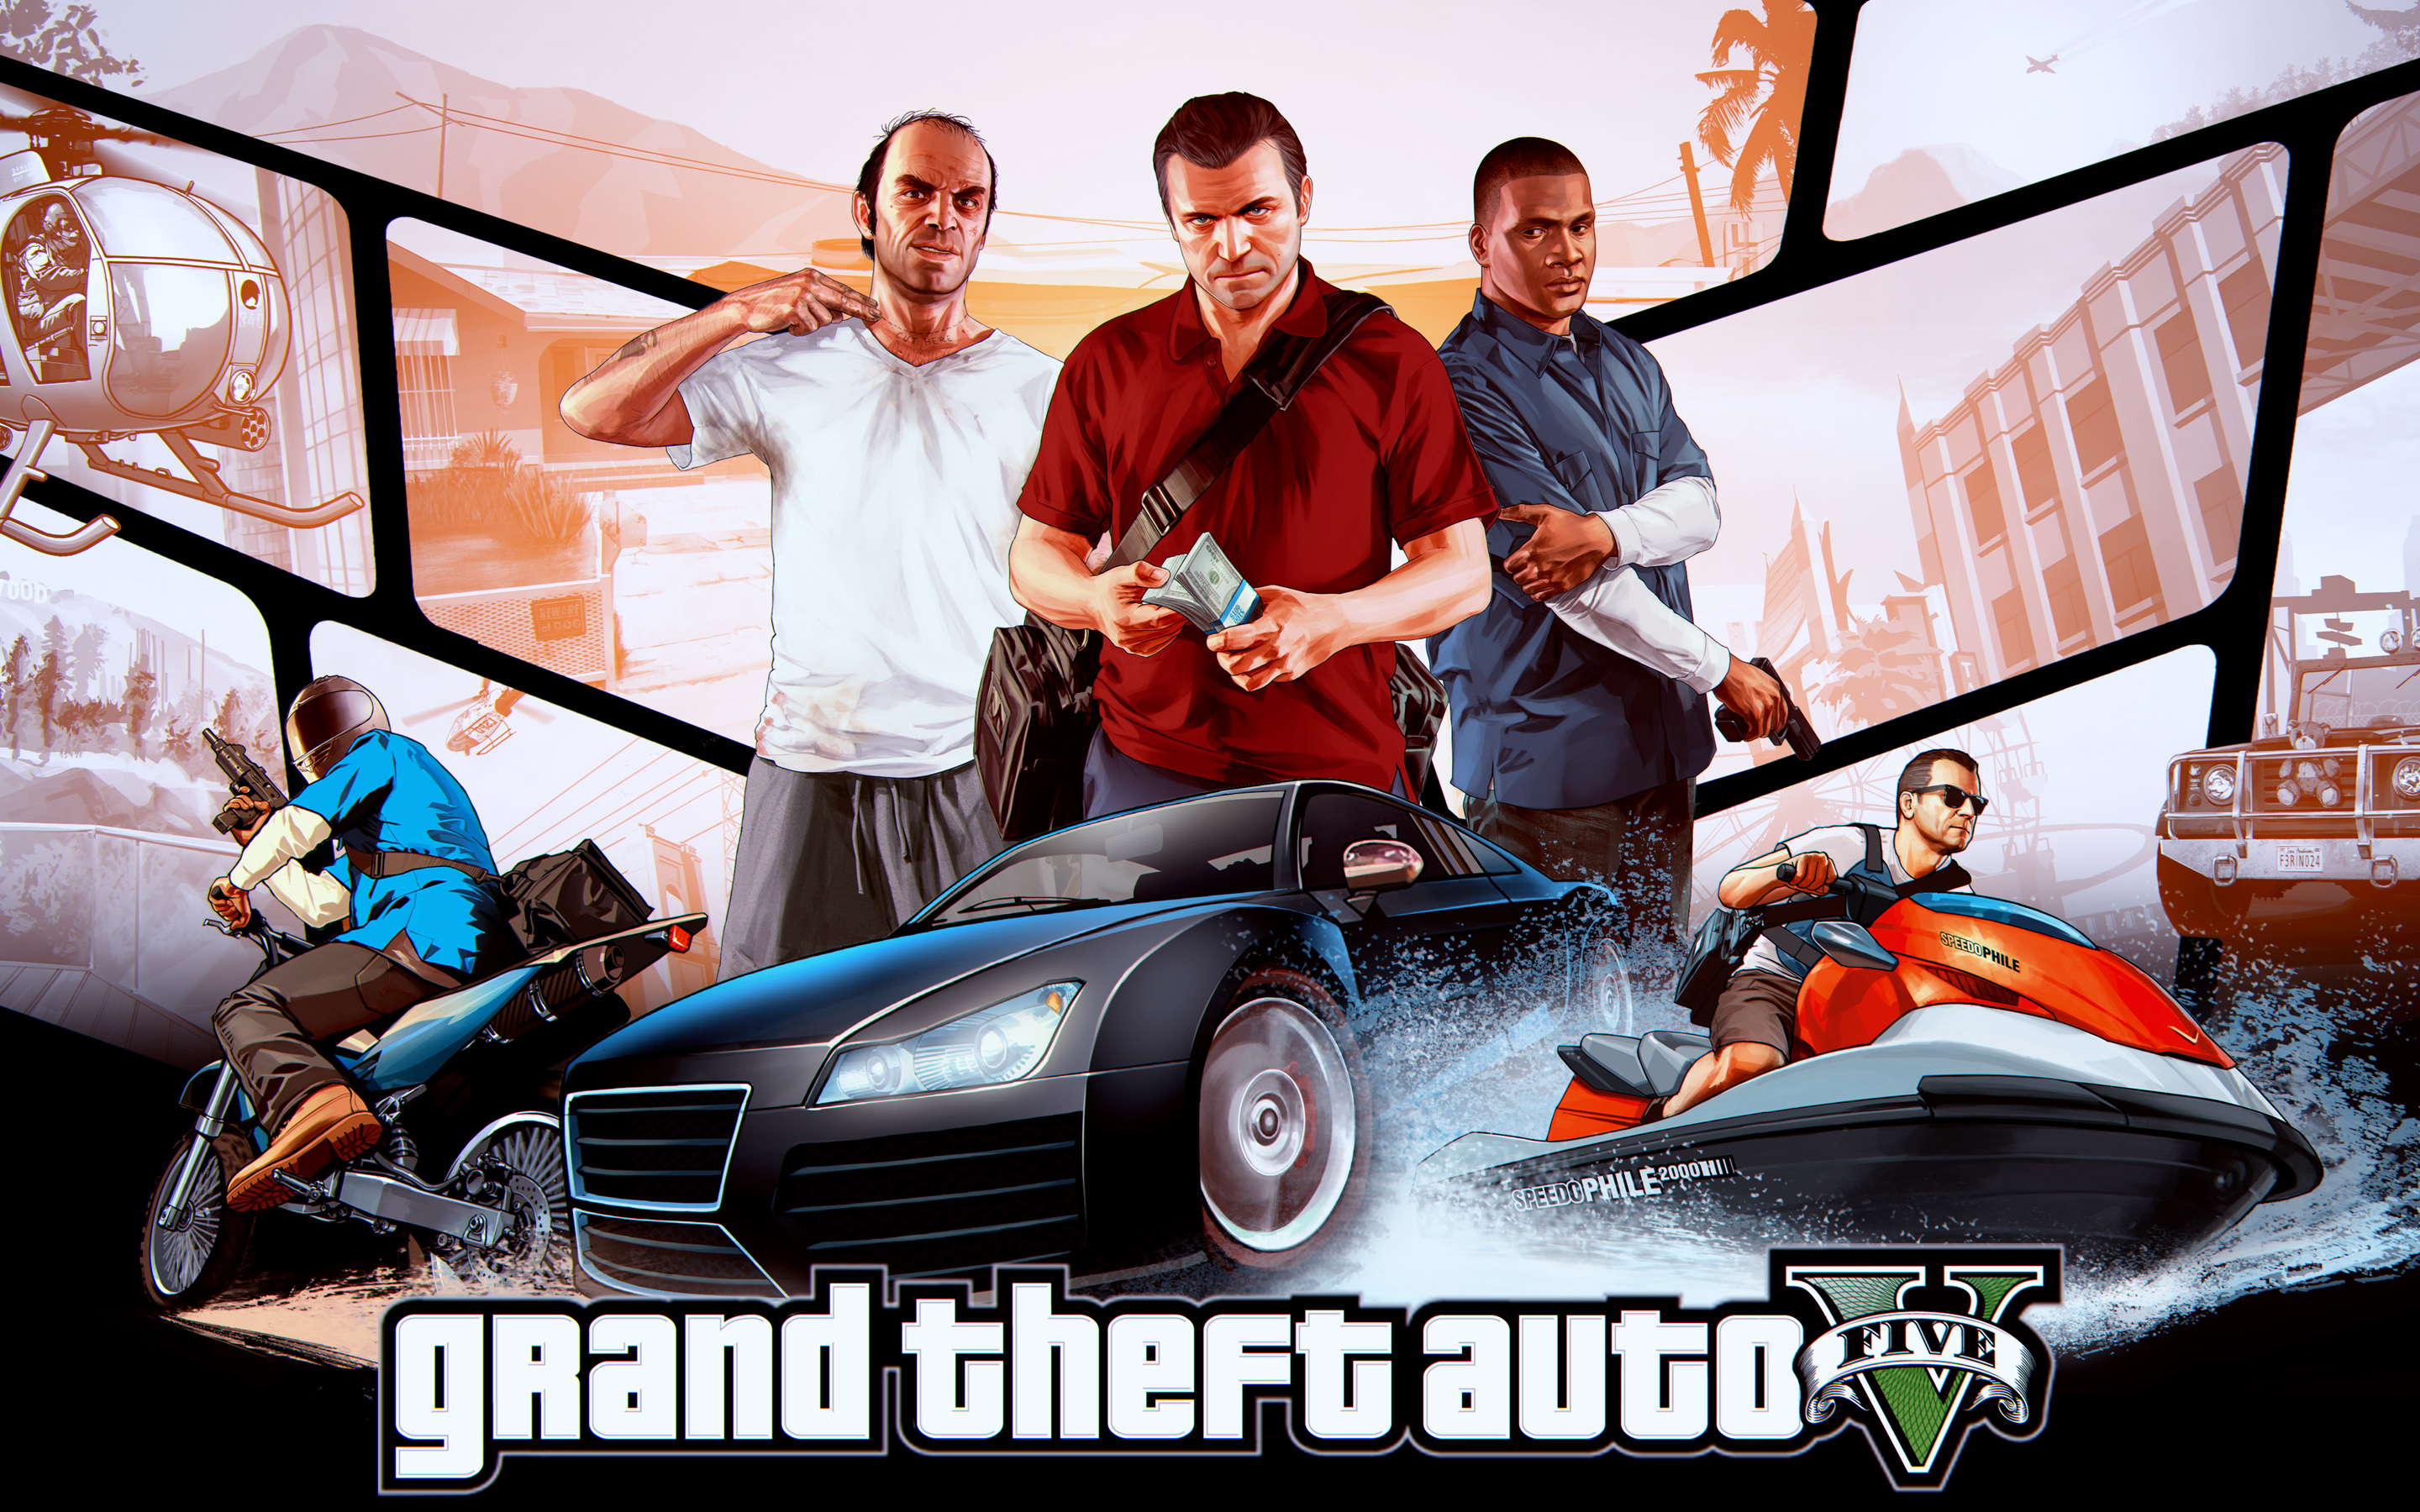 Grand Theft Auto V Wallpapers HD Wallpapers 2880x1800